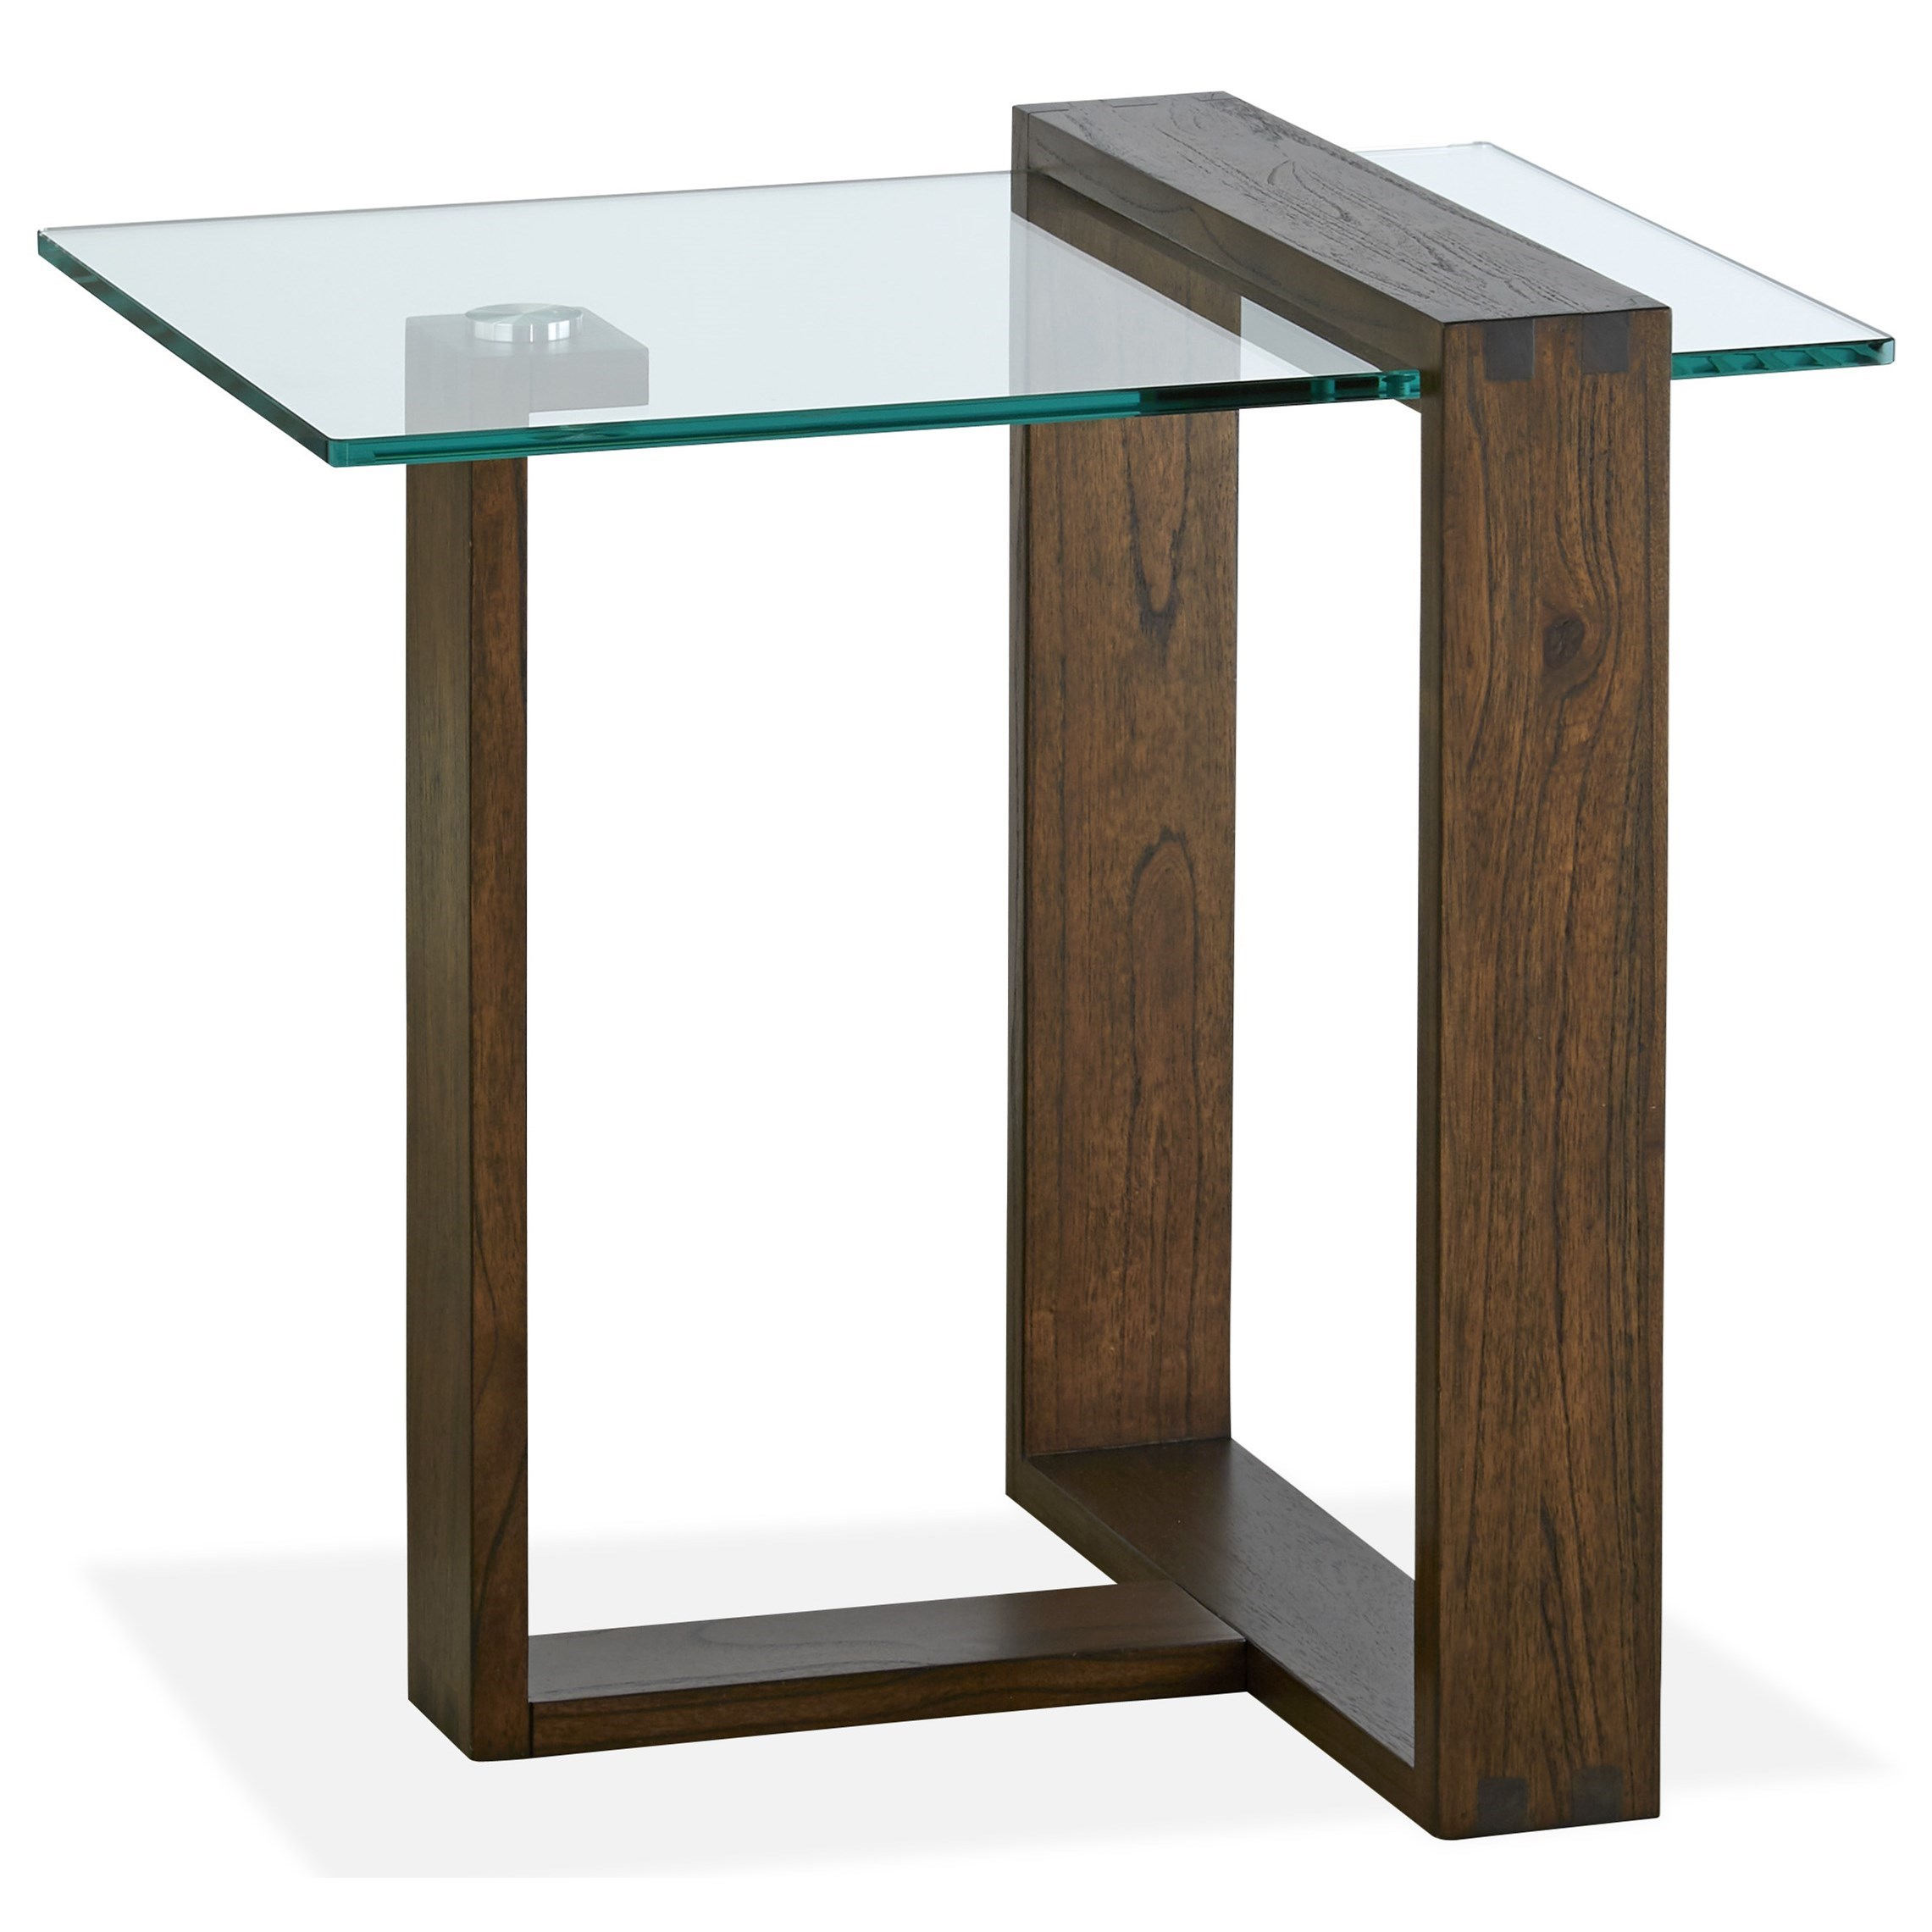 Bristow End Table by Magnussen Home at Darvin Furniture